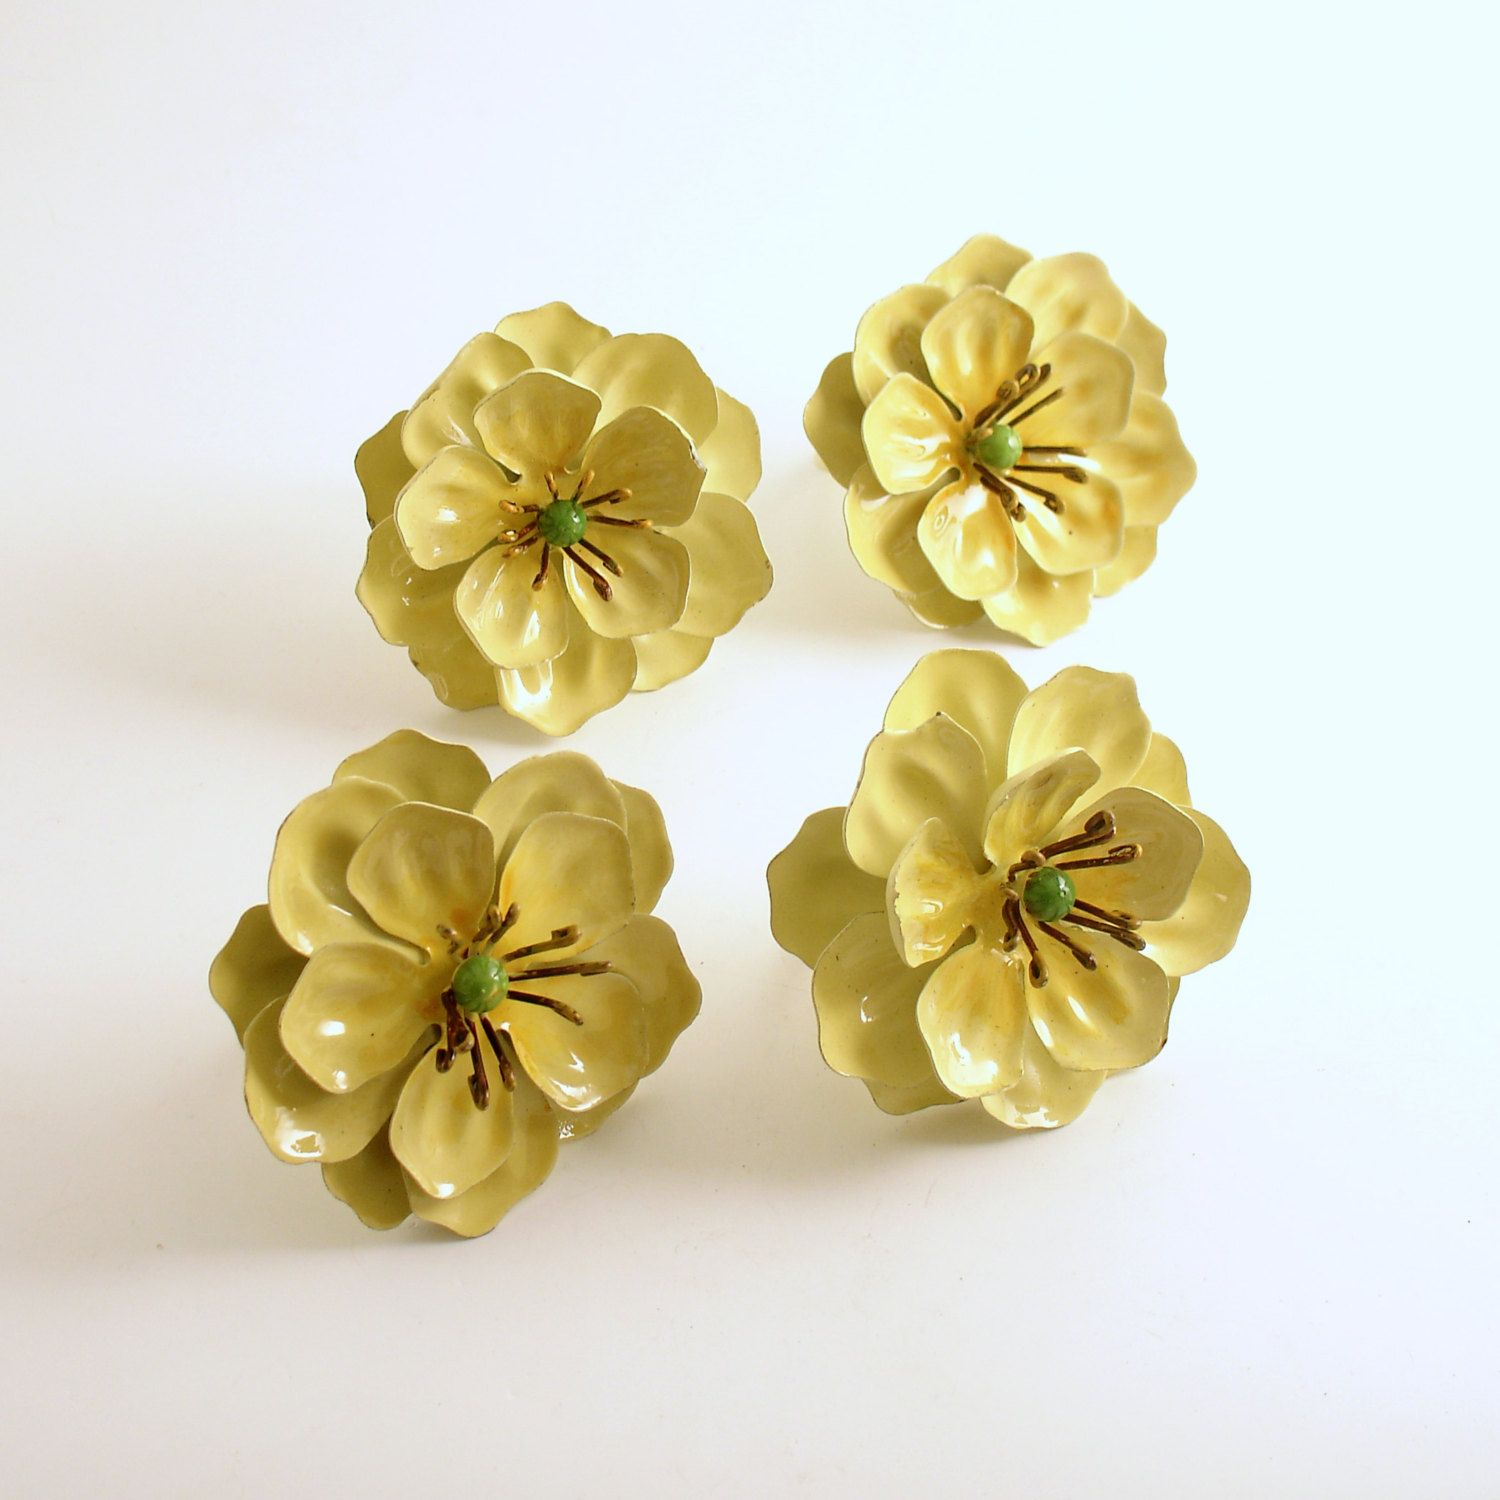 Vintage Tole Metal Flower Napkin Rings Set | Napkin rings